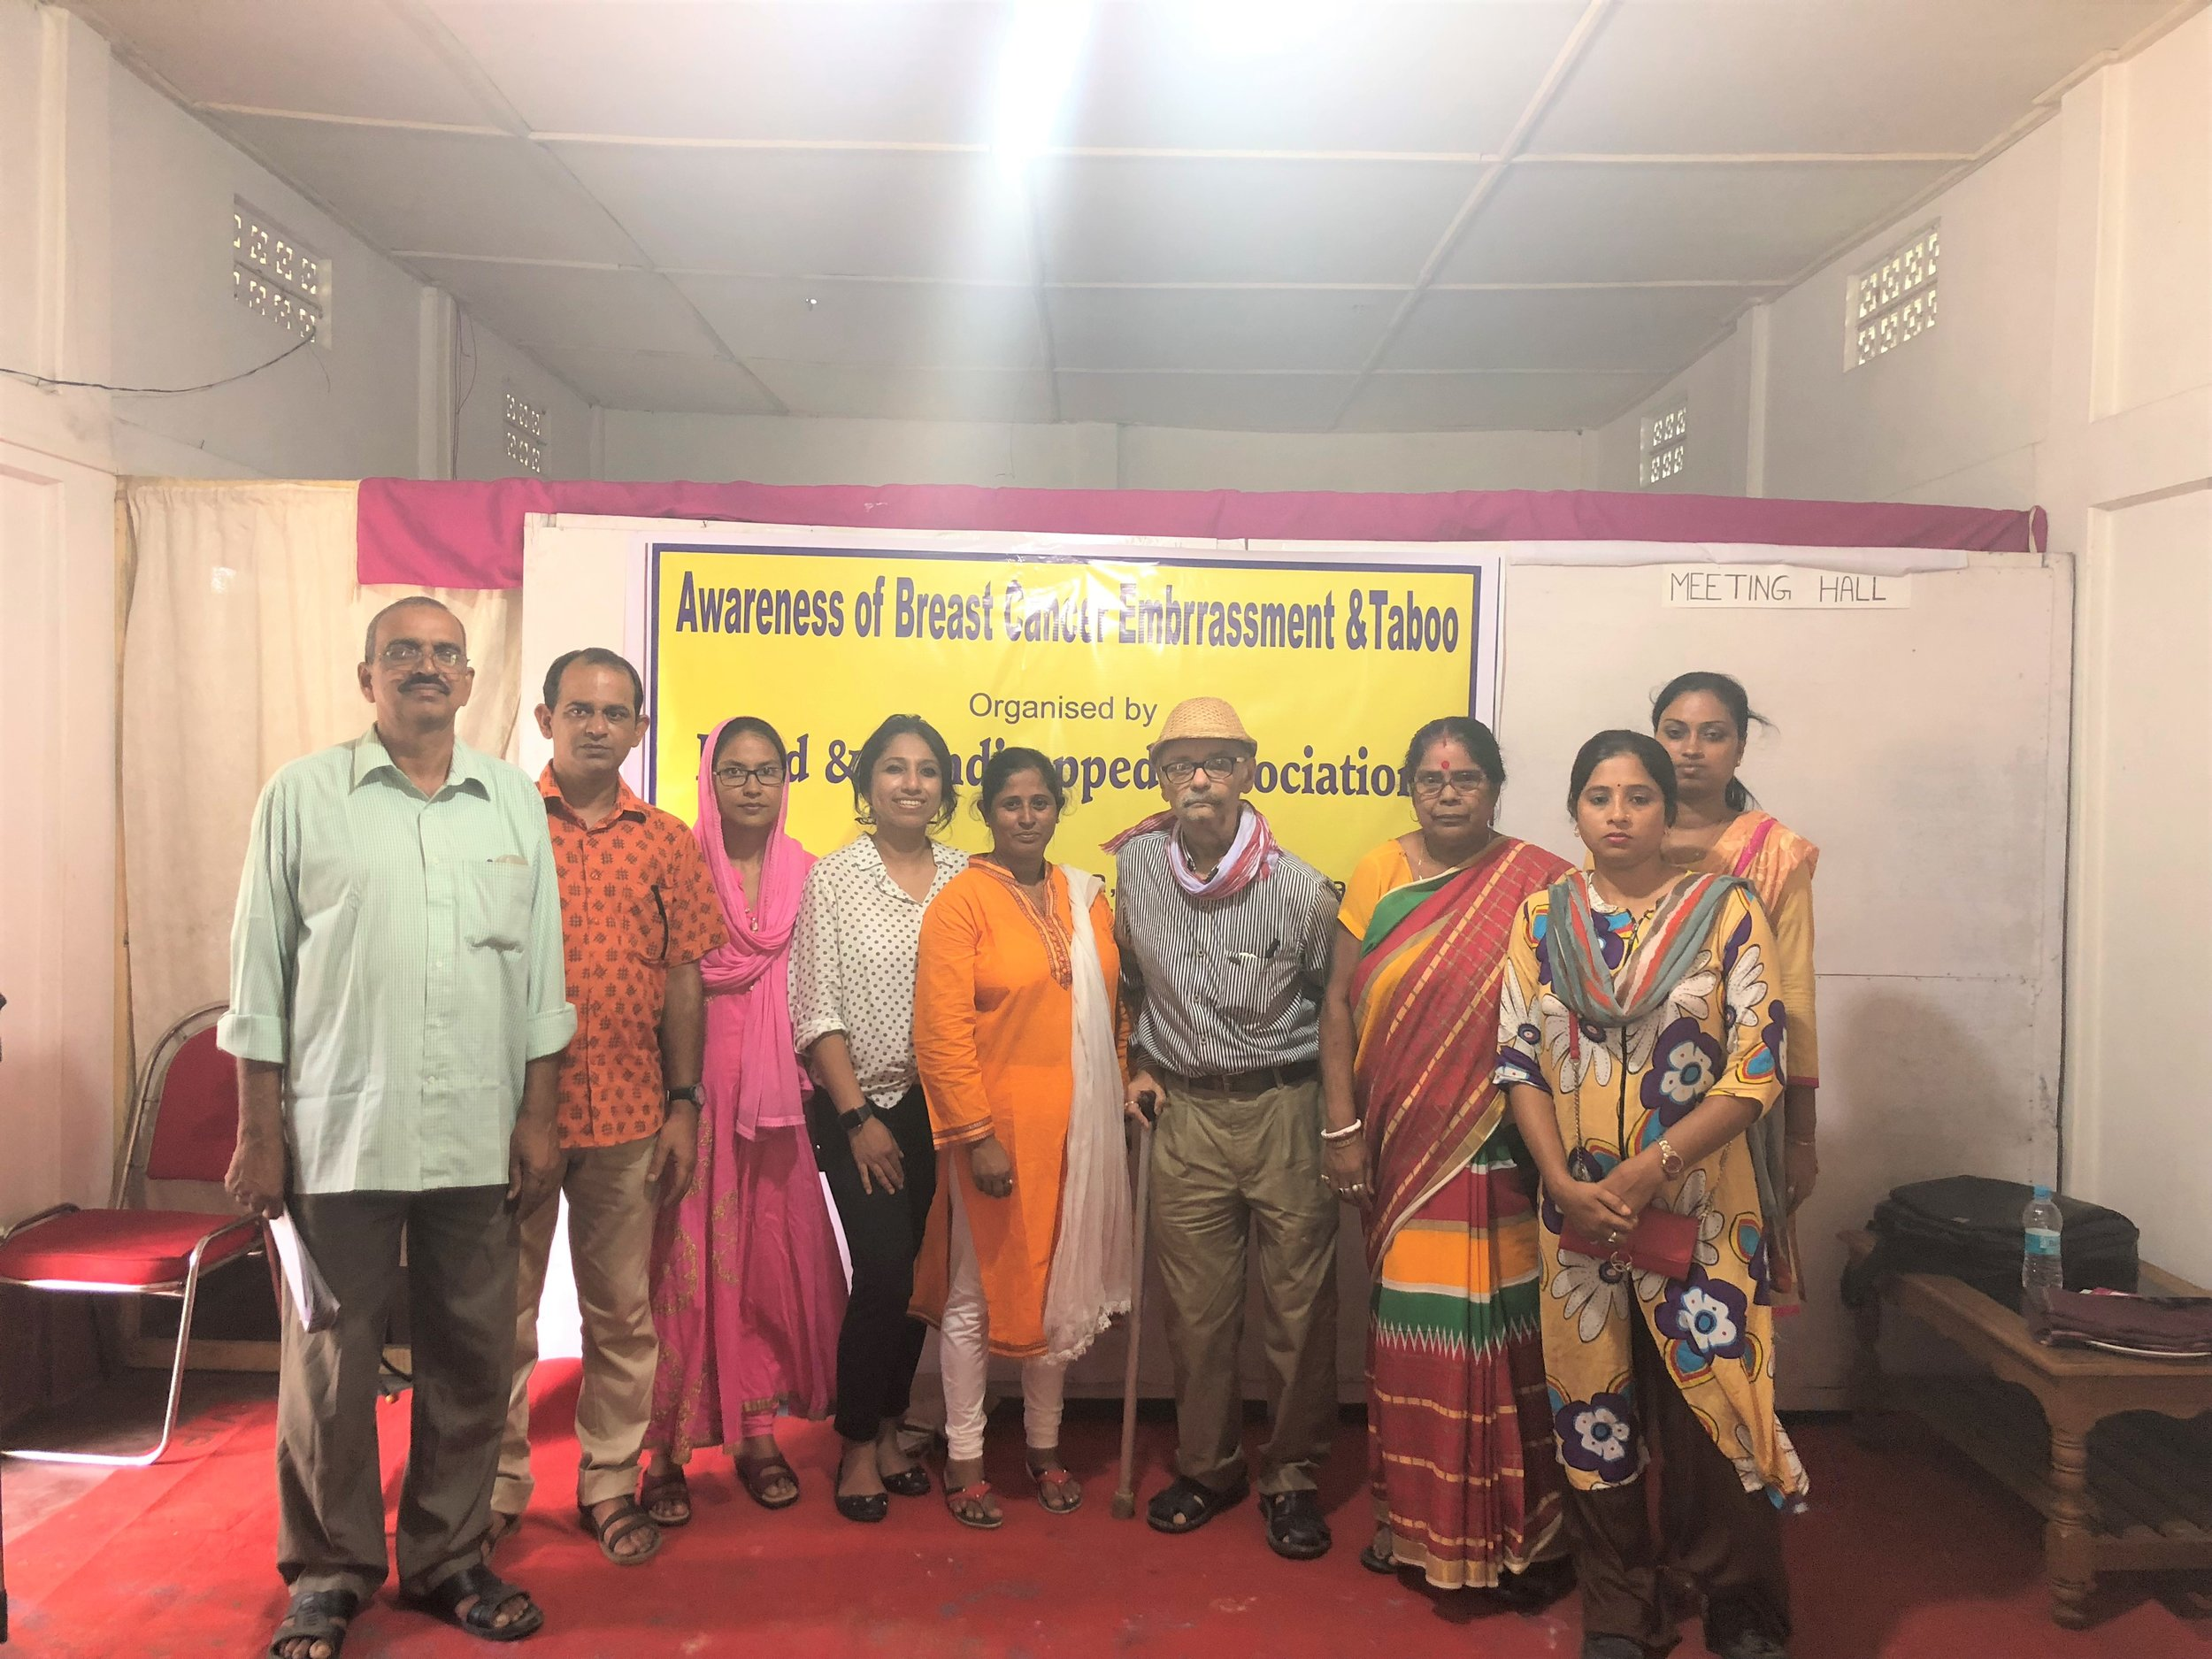 Thank you Blind & Handicapped assocaition for organizing the event and sincerely thankful to you all for coming forward to collaborate!